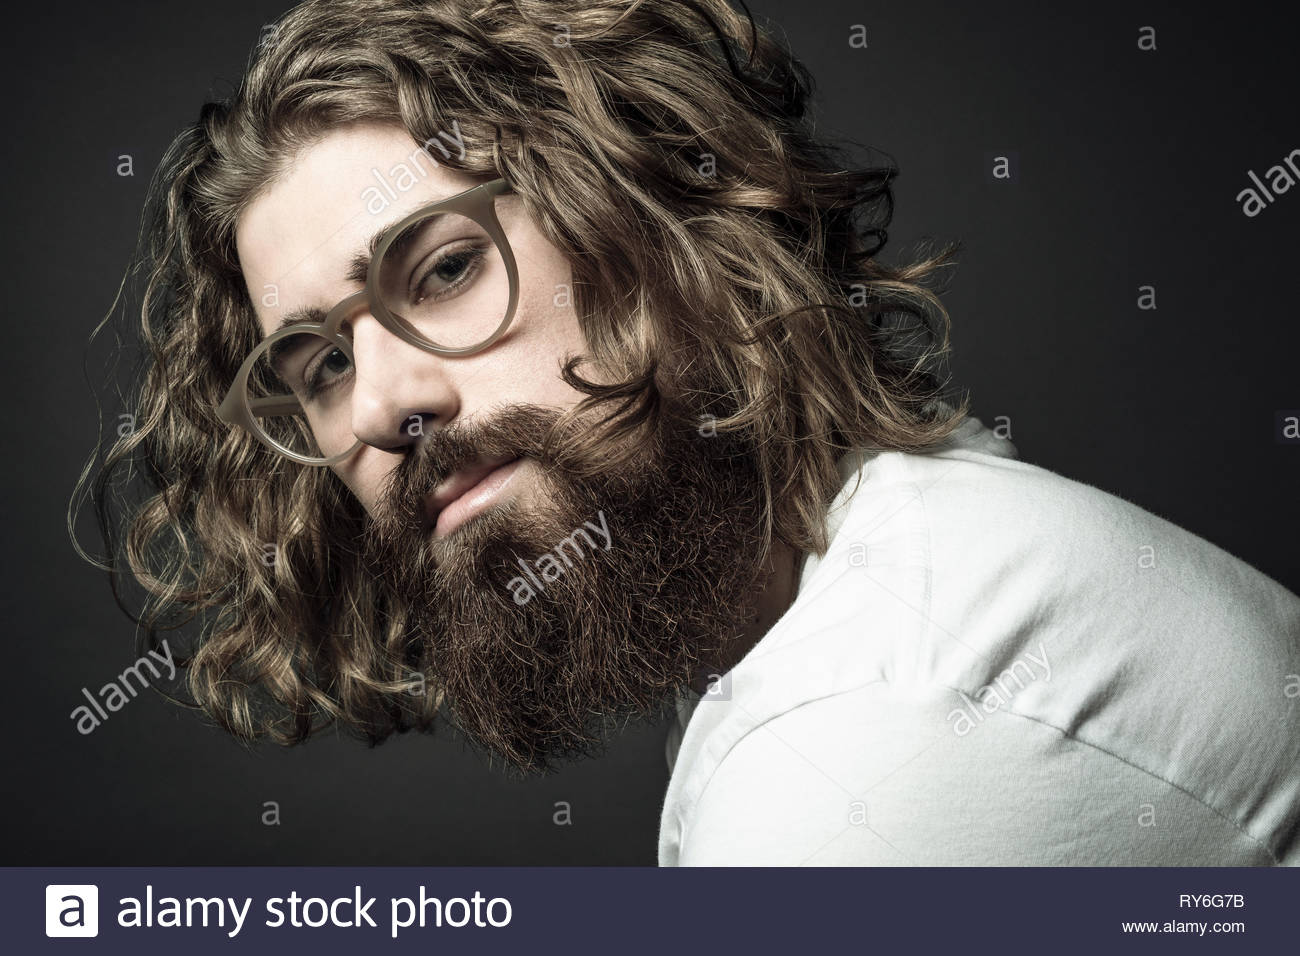 Portrait confident handsome young man with curly long hair and beard - Stock Image